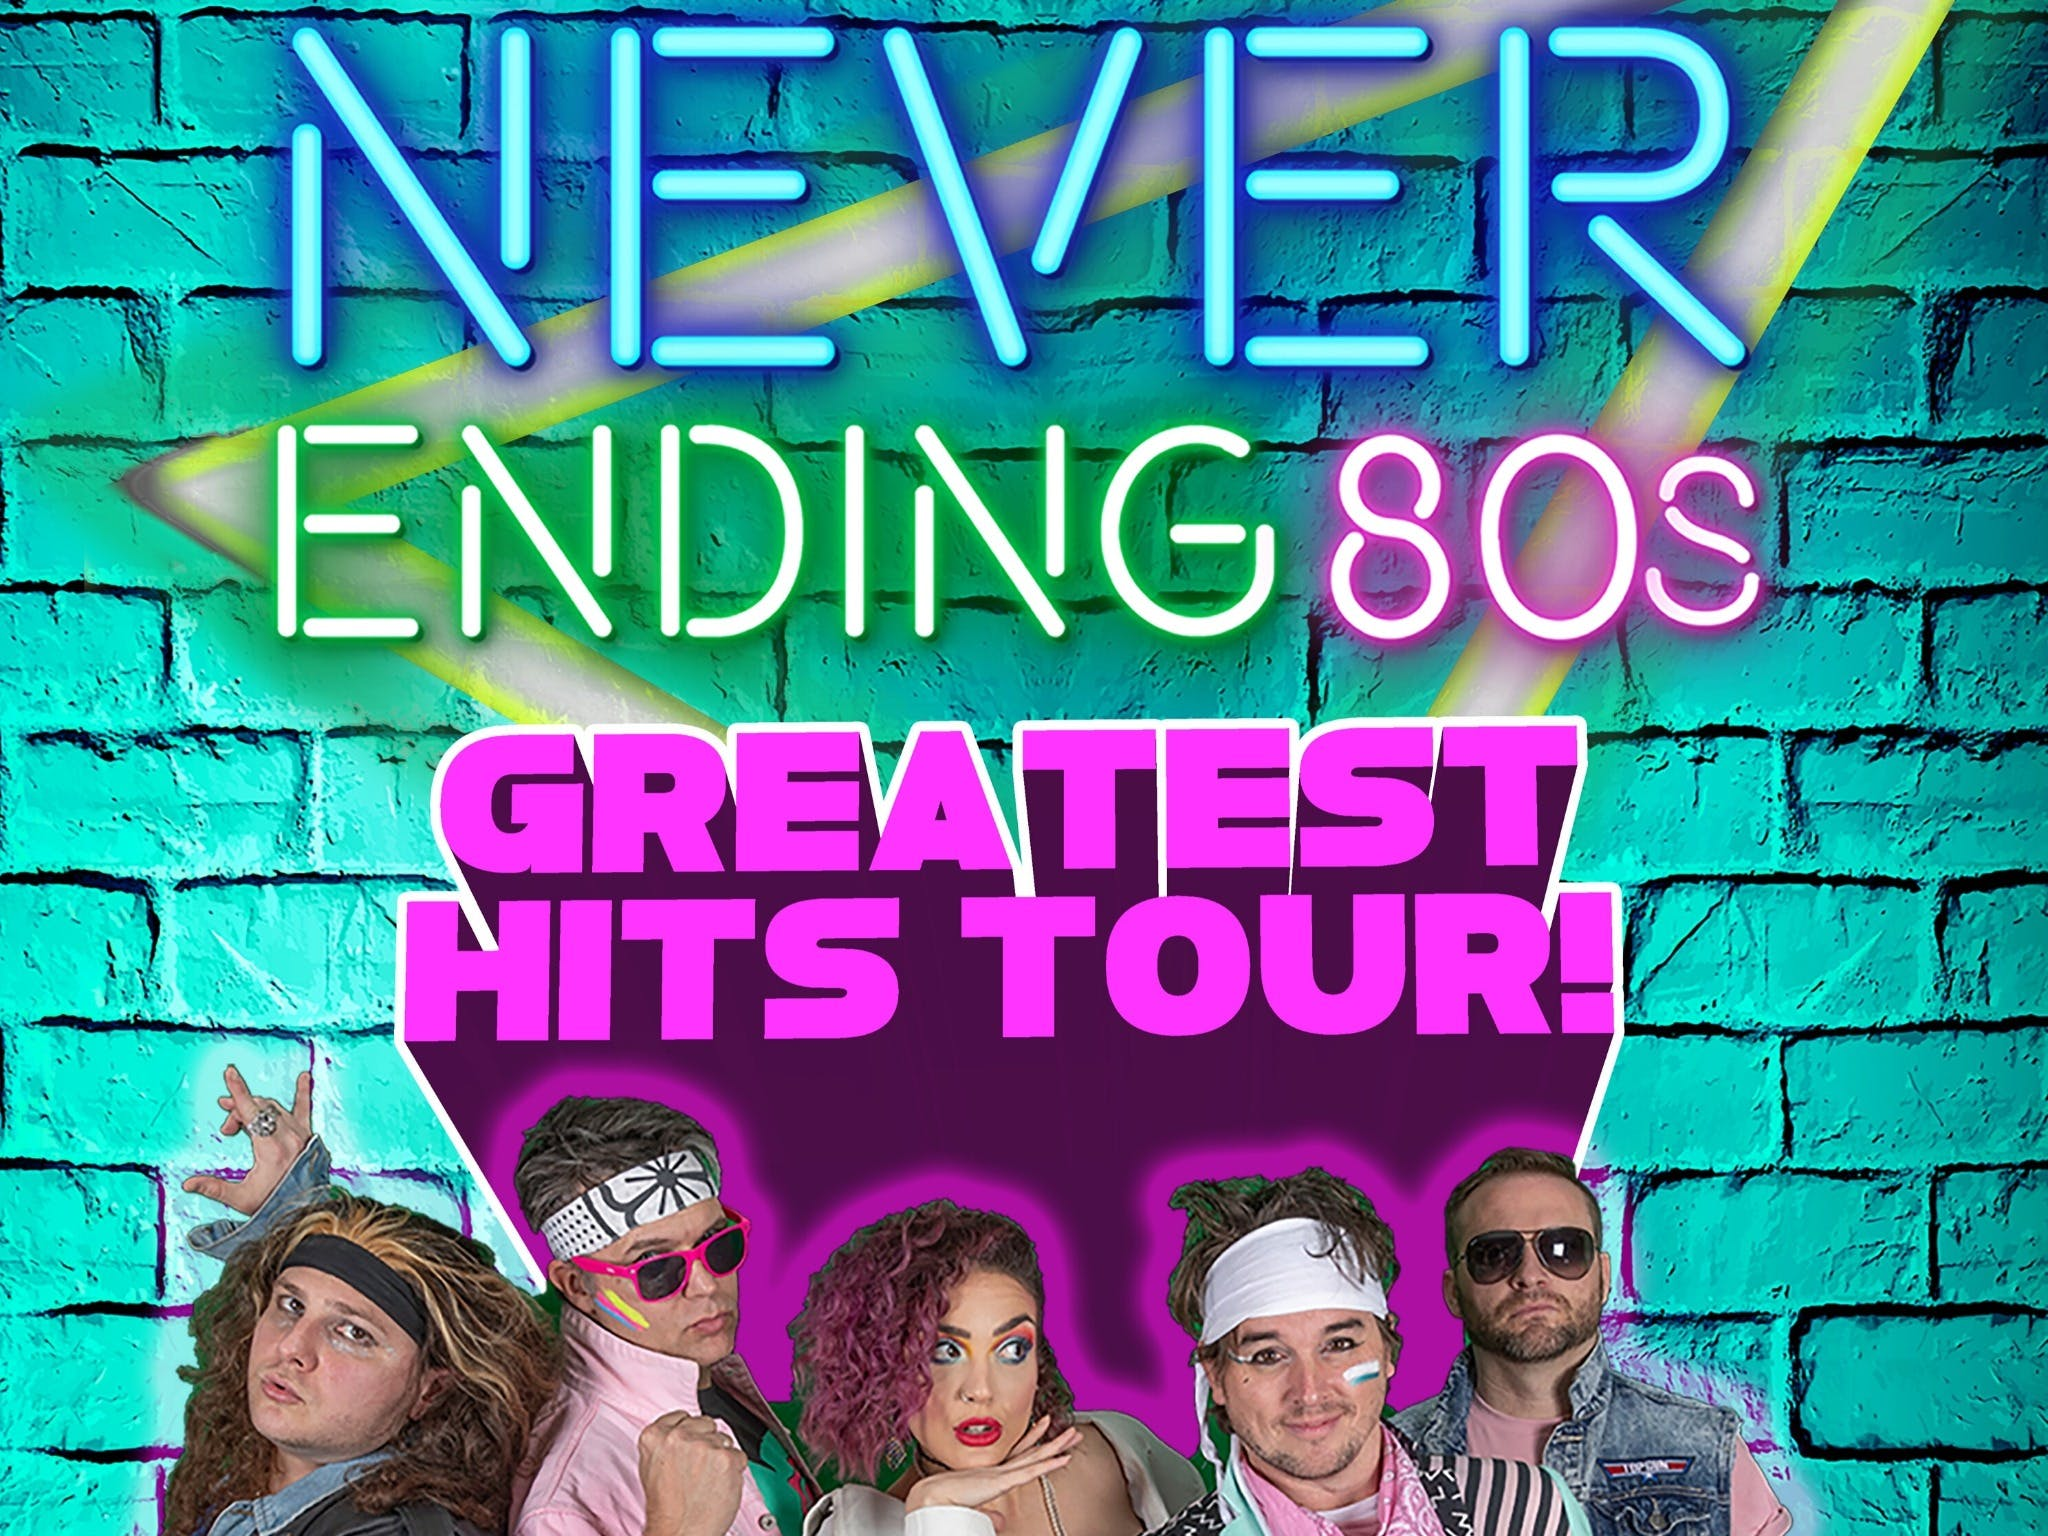 Never Ending 80s - The Greatest Hits Tour - Accommodation in Surfers Paradise